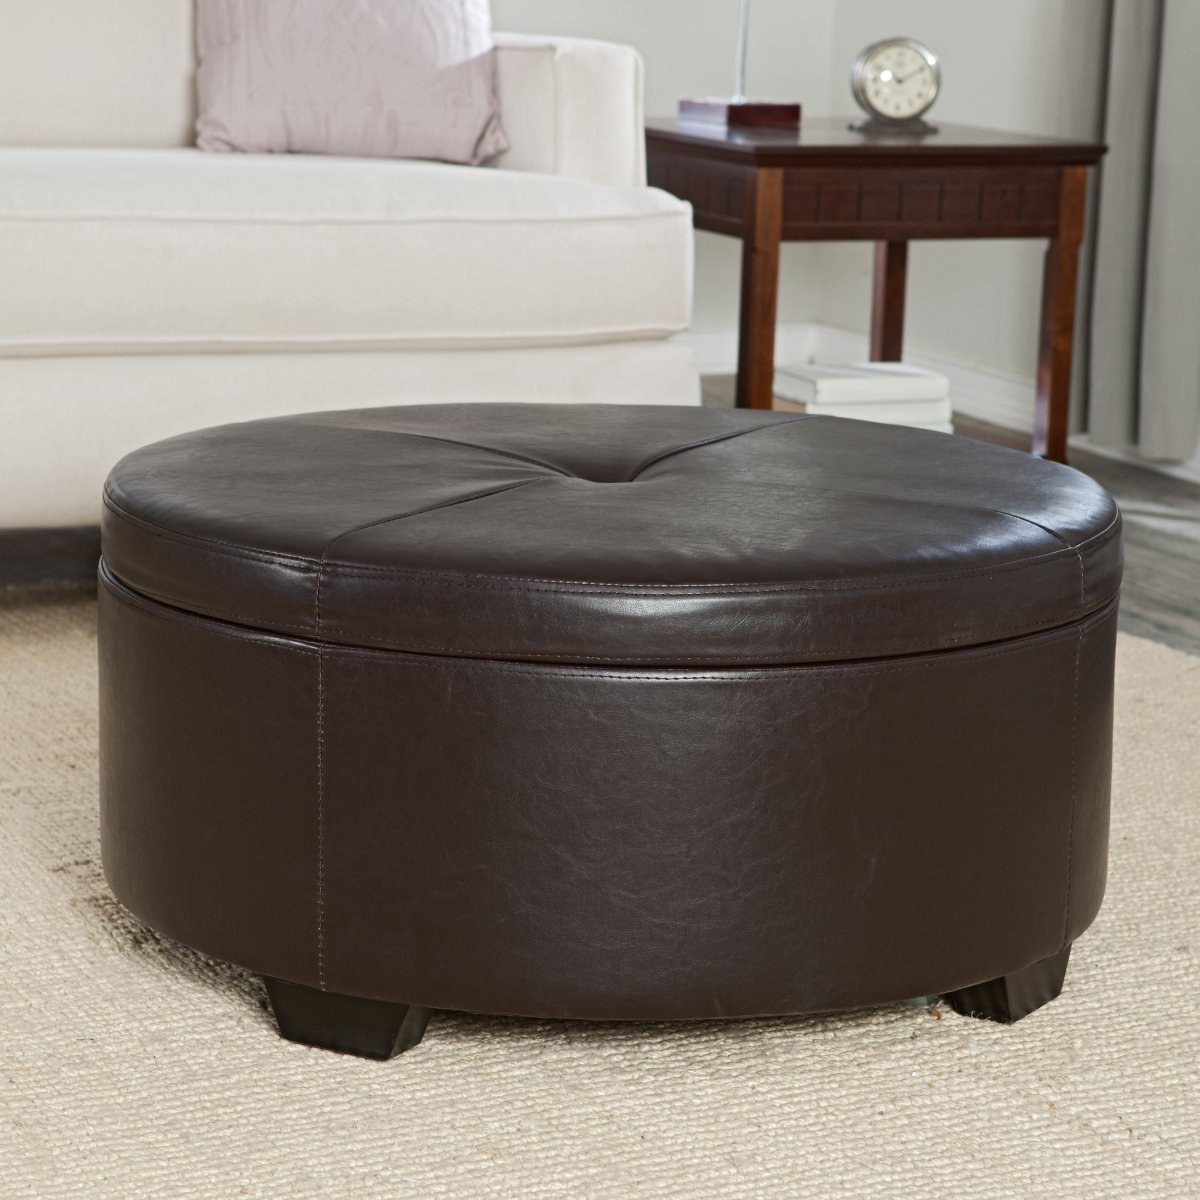 Leather Ottoman Coffee Table Elegant Leather Ottoman Coffee Table Dark Brown Leather (Image 4 of 10)